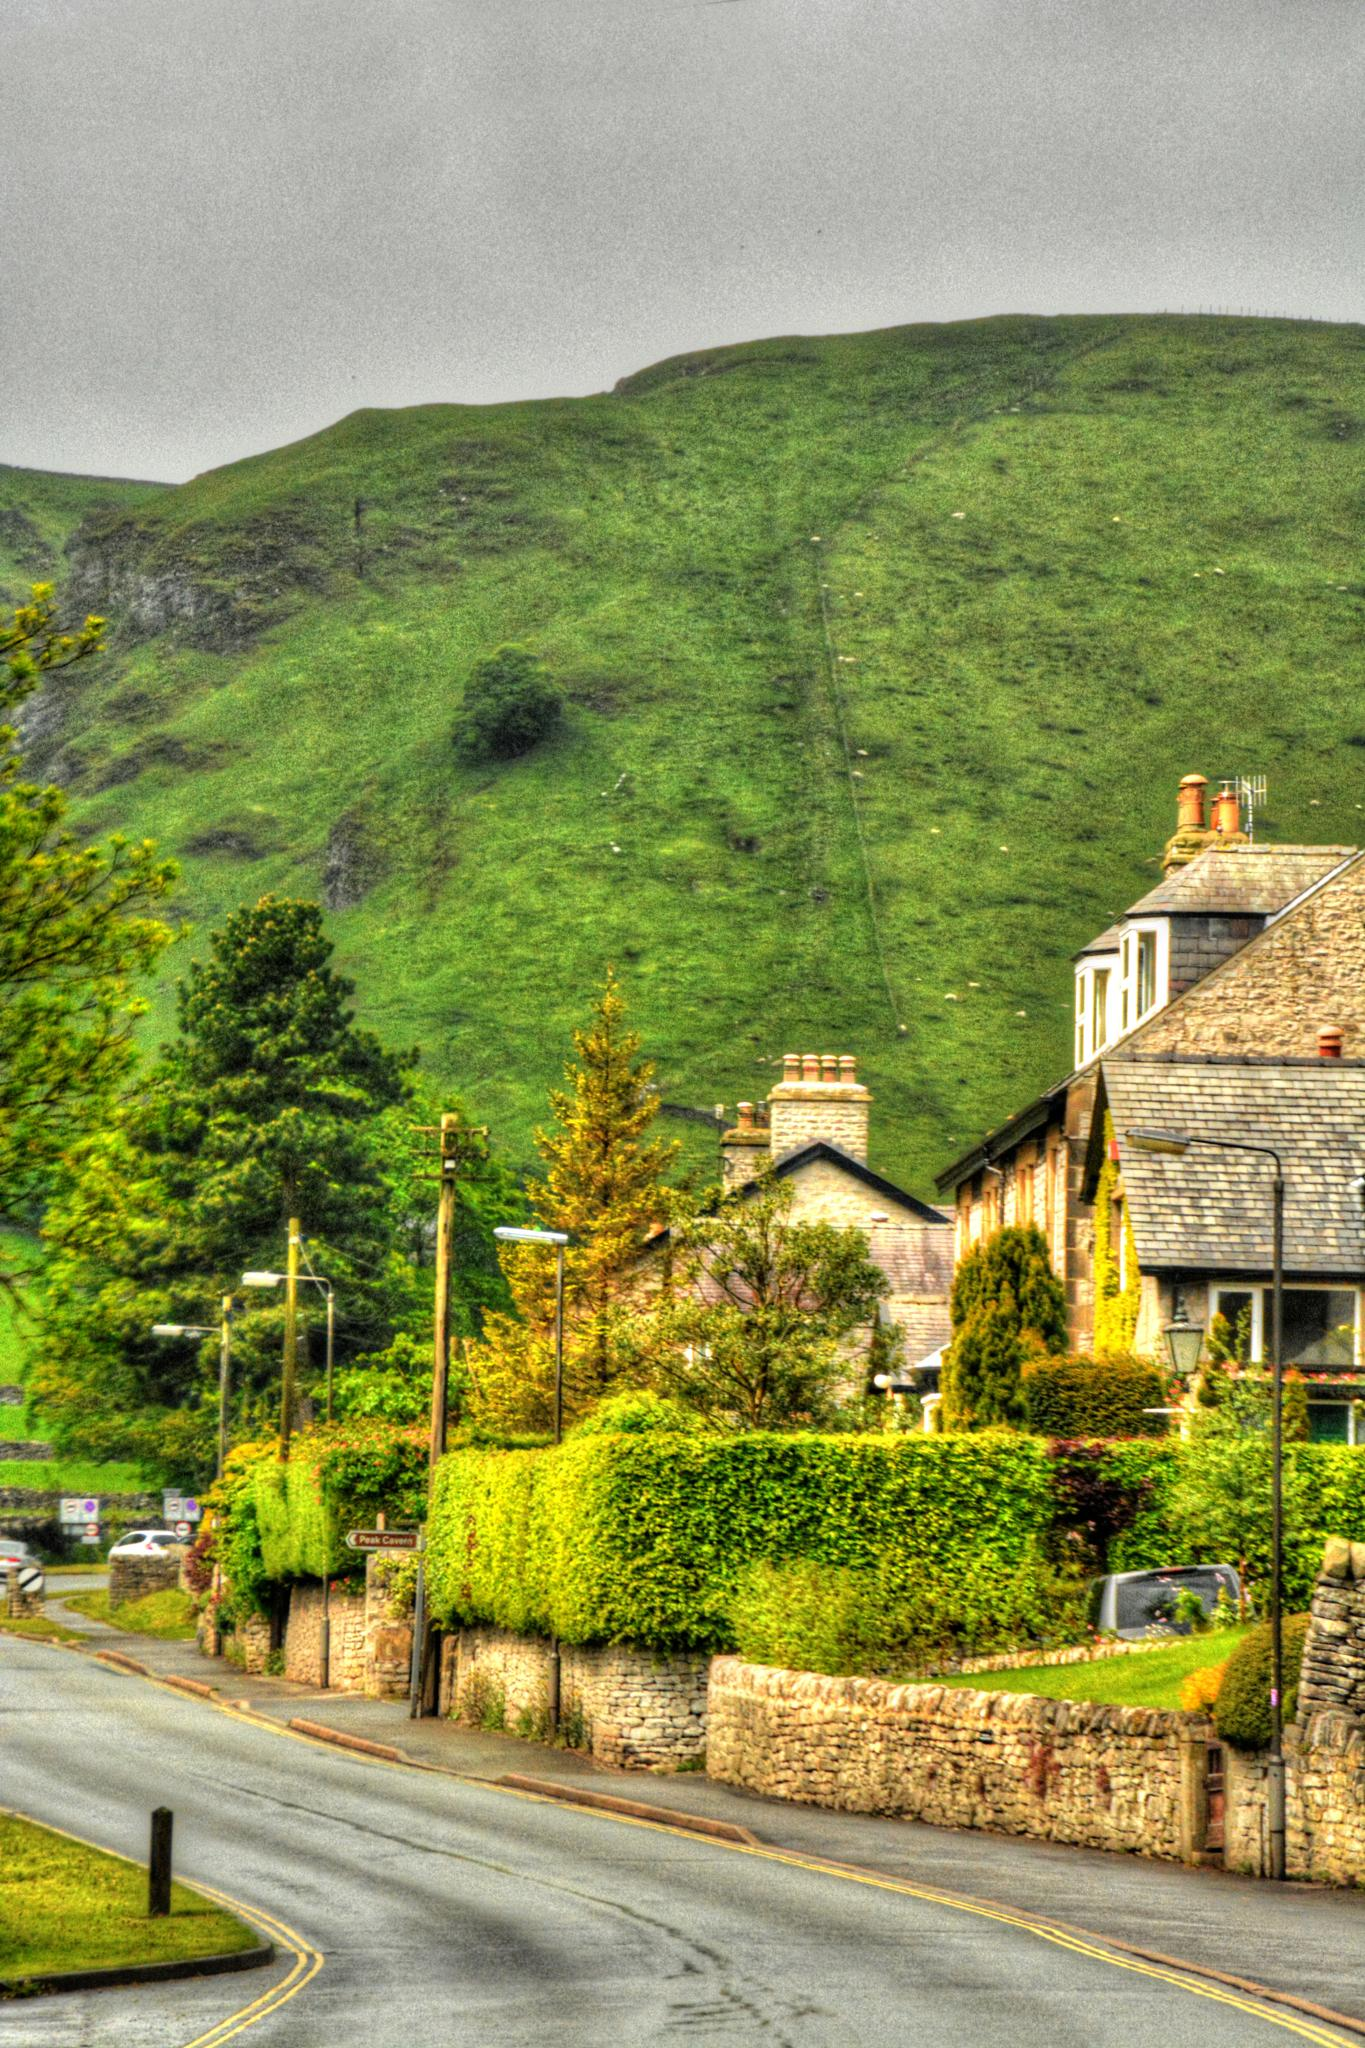 castleton in the peak district derbyshire the home of blue john by Stuart Robertshaw Photography